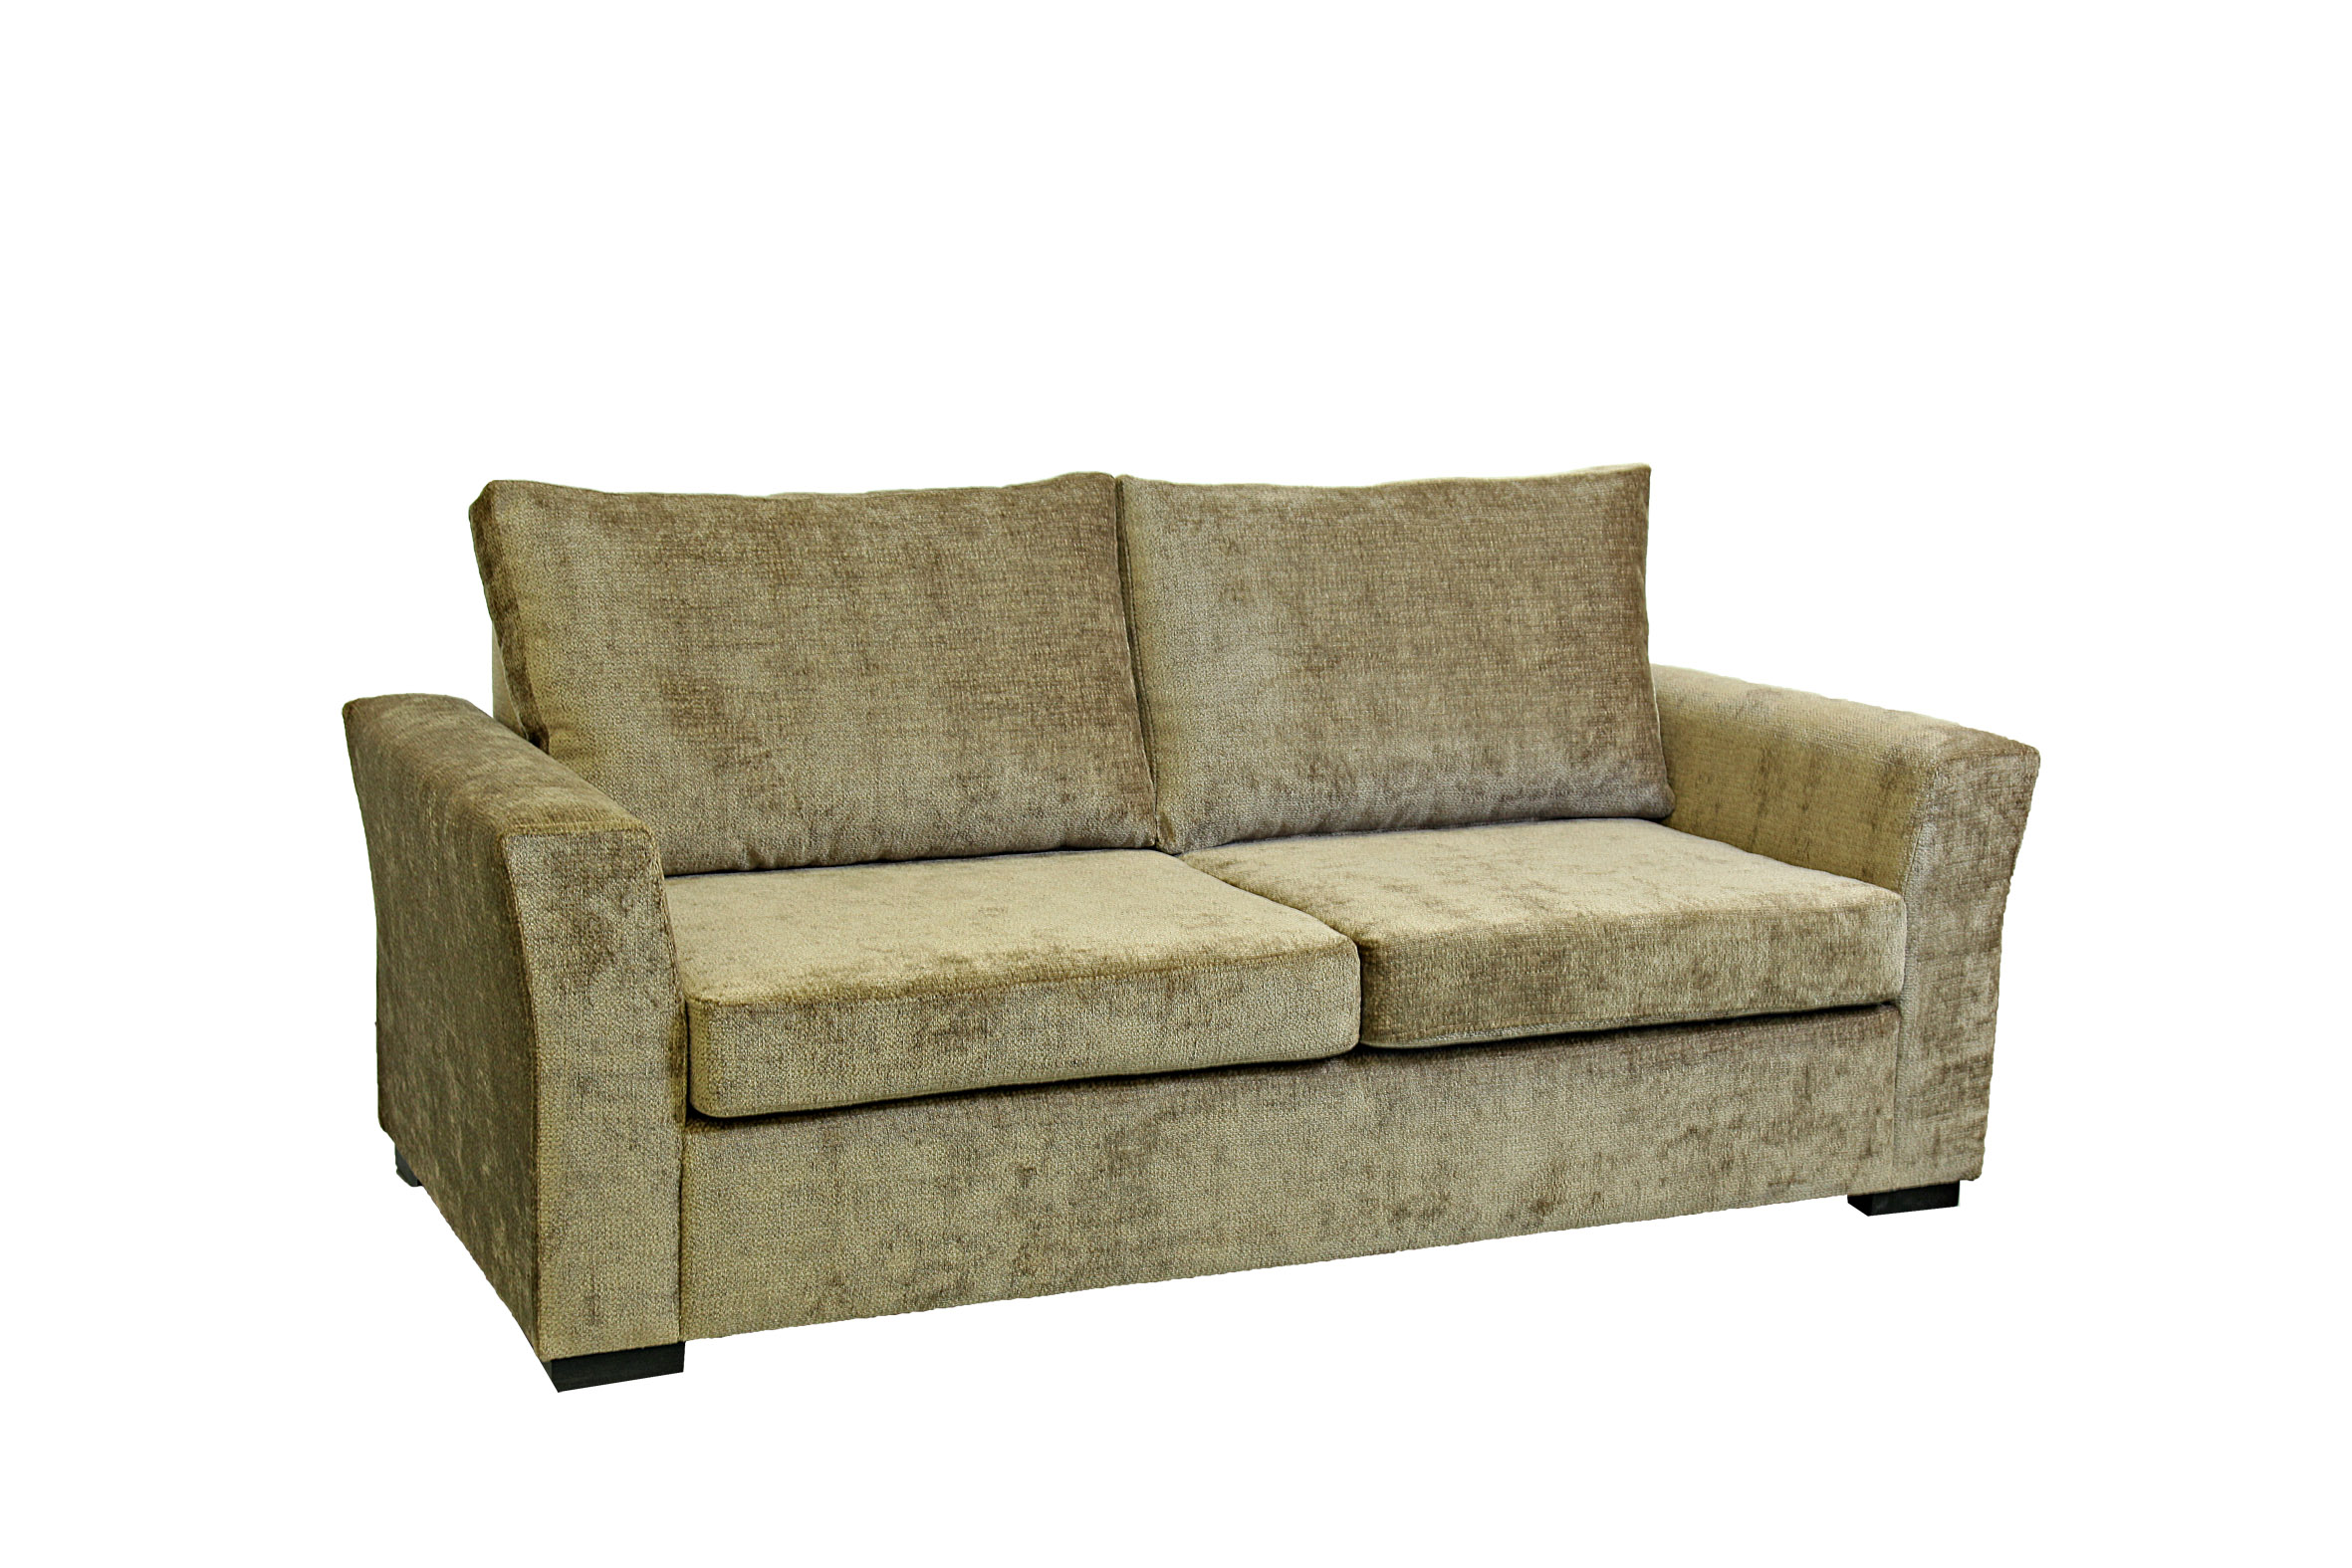 CHiLLi PiP Furniture Custom Made Lounges Manufacturer Sofas